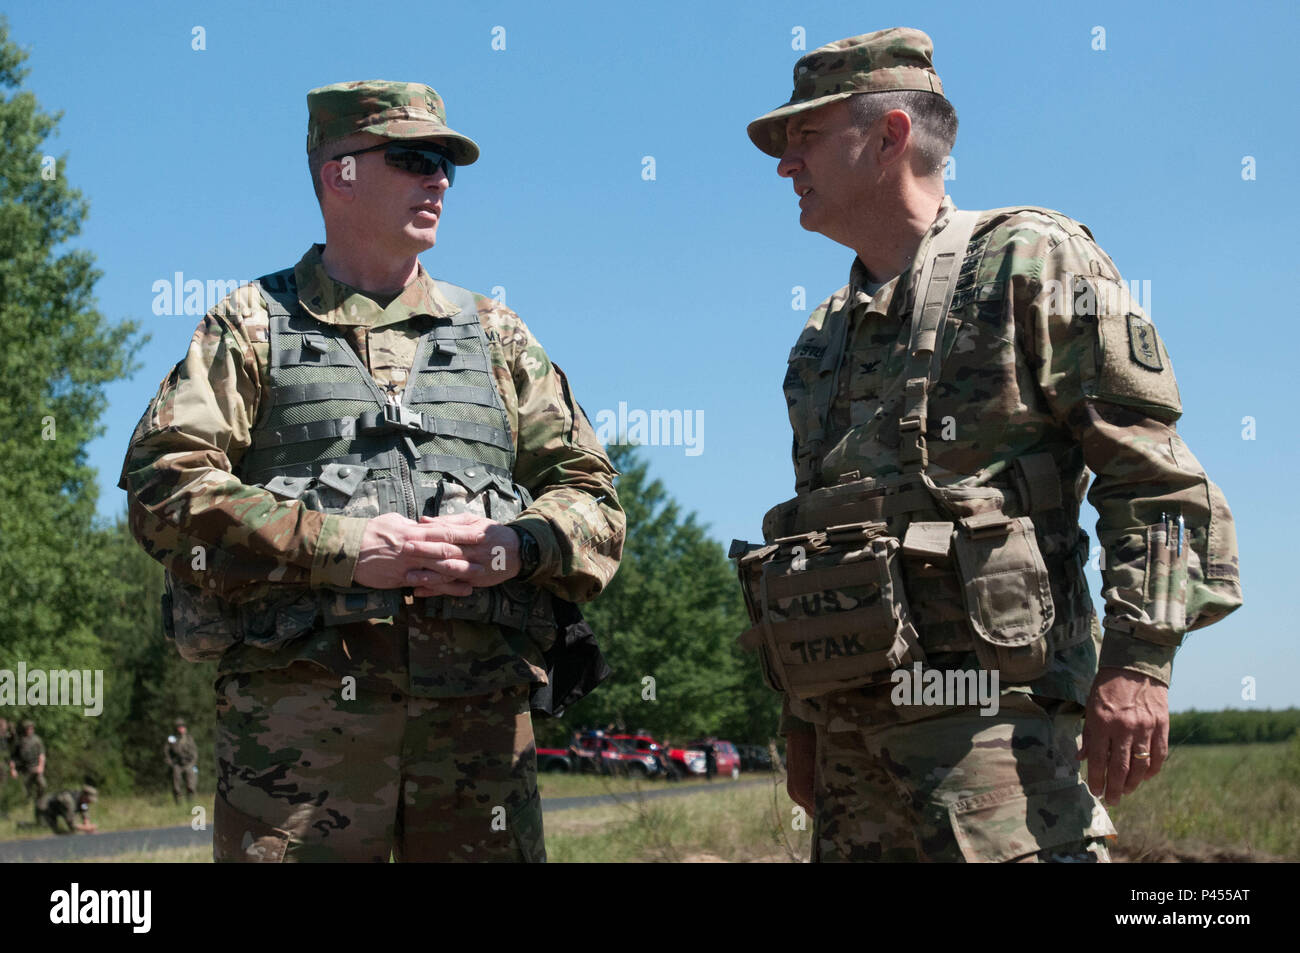 30th Medical Brigade hosts Brig. Gen. Greg Mosser, 364th Expeditionary Sustainment Command's Commanding General, on the drop zone in Torun, Poland for the Swift Response 16 airborne jump. U.S., Polish, and U.K. forces jumped into the drop zone on June 7 with medical coverage provided by 30th MB, Polish 1st Army Field Hospital, 10th Military Hospital, and U.K. 16th Medical Regiment. (U.S. Army photo by Capt. Jeku Arce, 30th Medical Brigade) - Stock Image